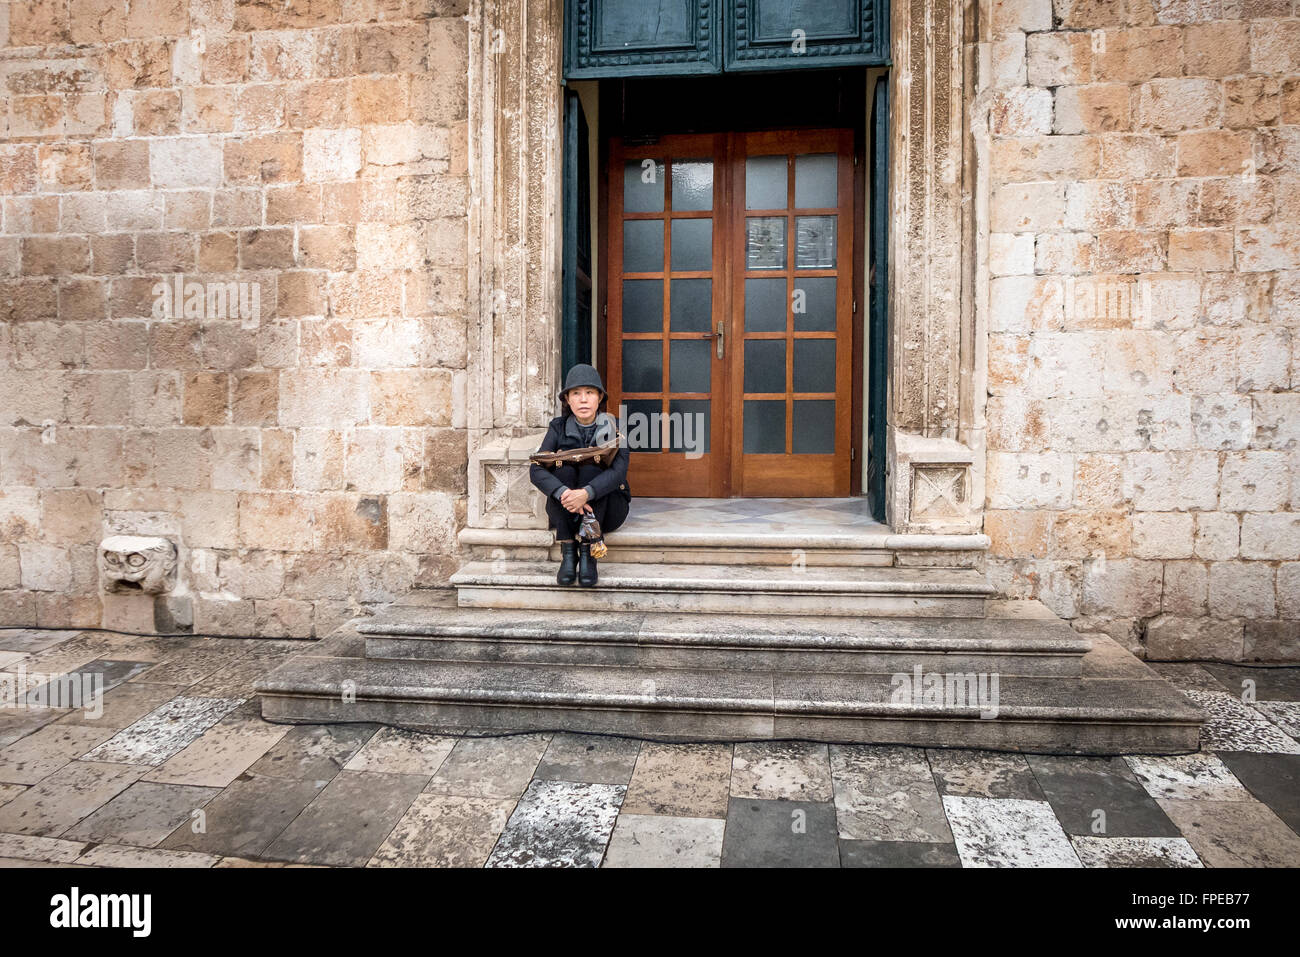 A tourist sitting on steps in the old city of Dubrovnik. - Stock Image